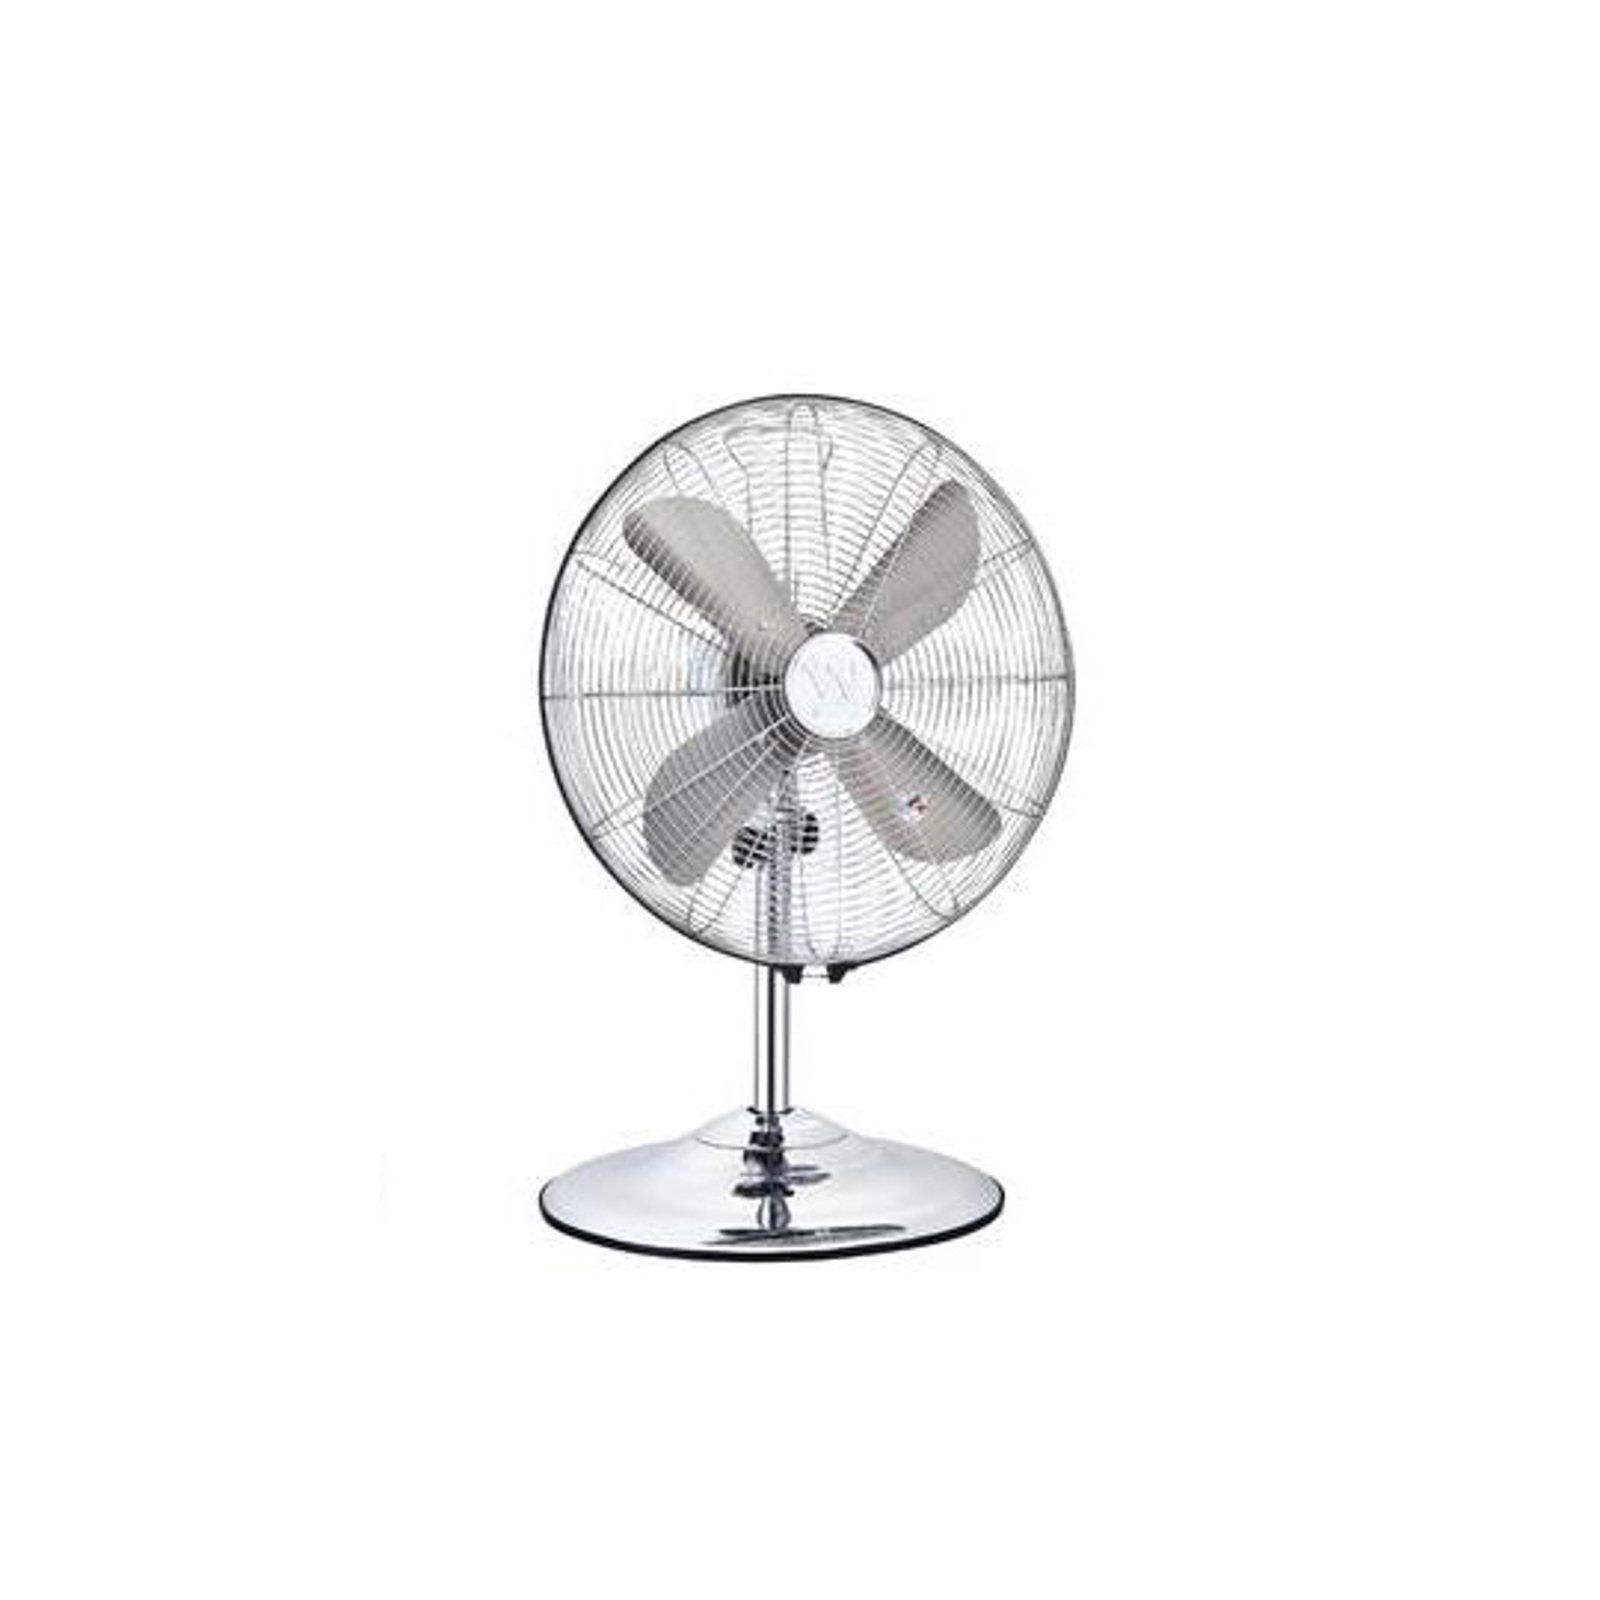 Westinghouse Silver Stream - 3 in 1 Ventilator